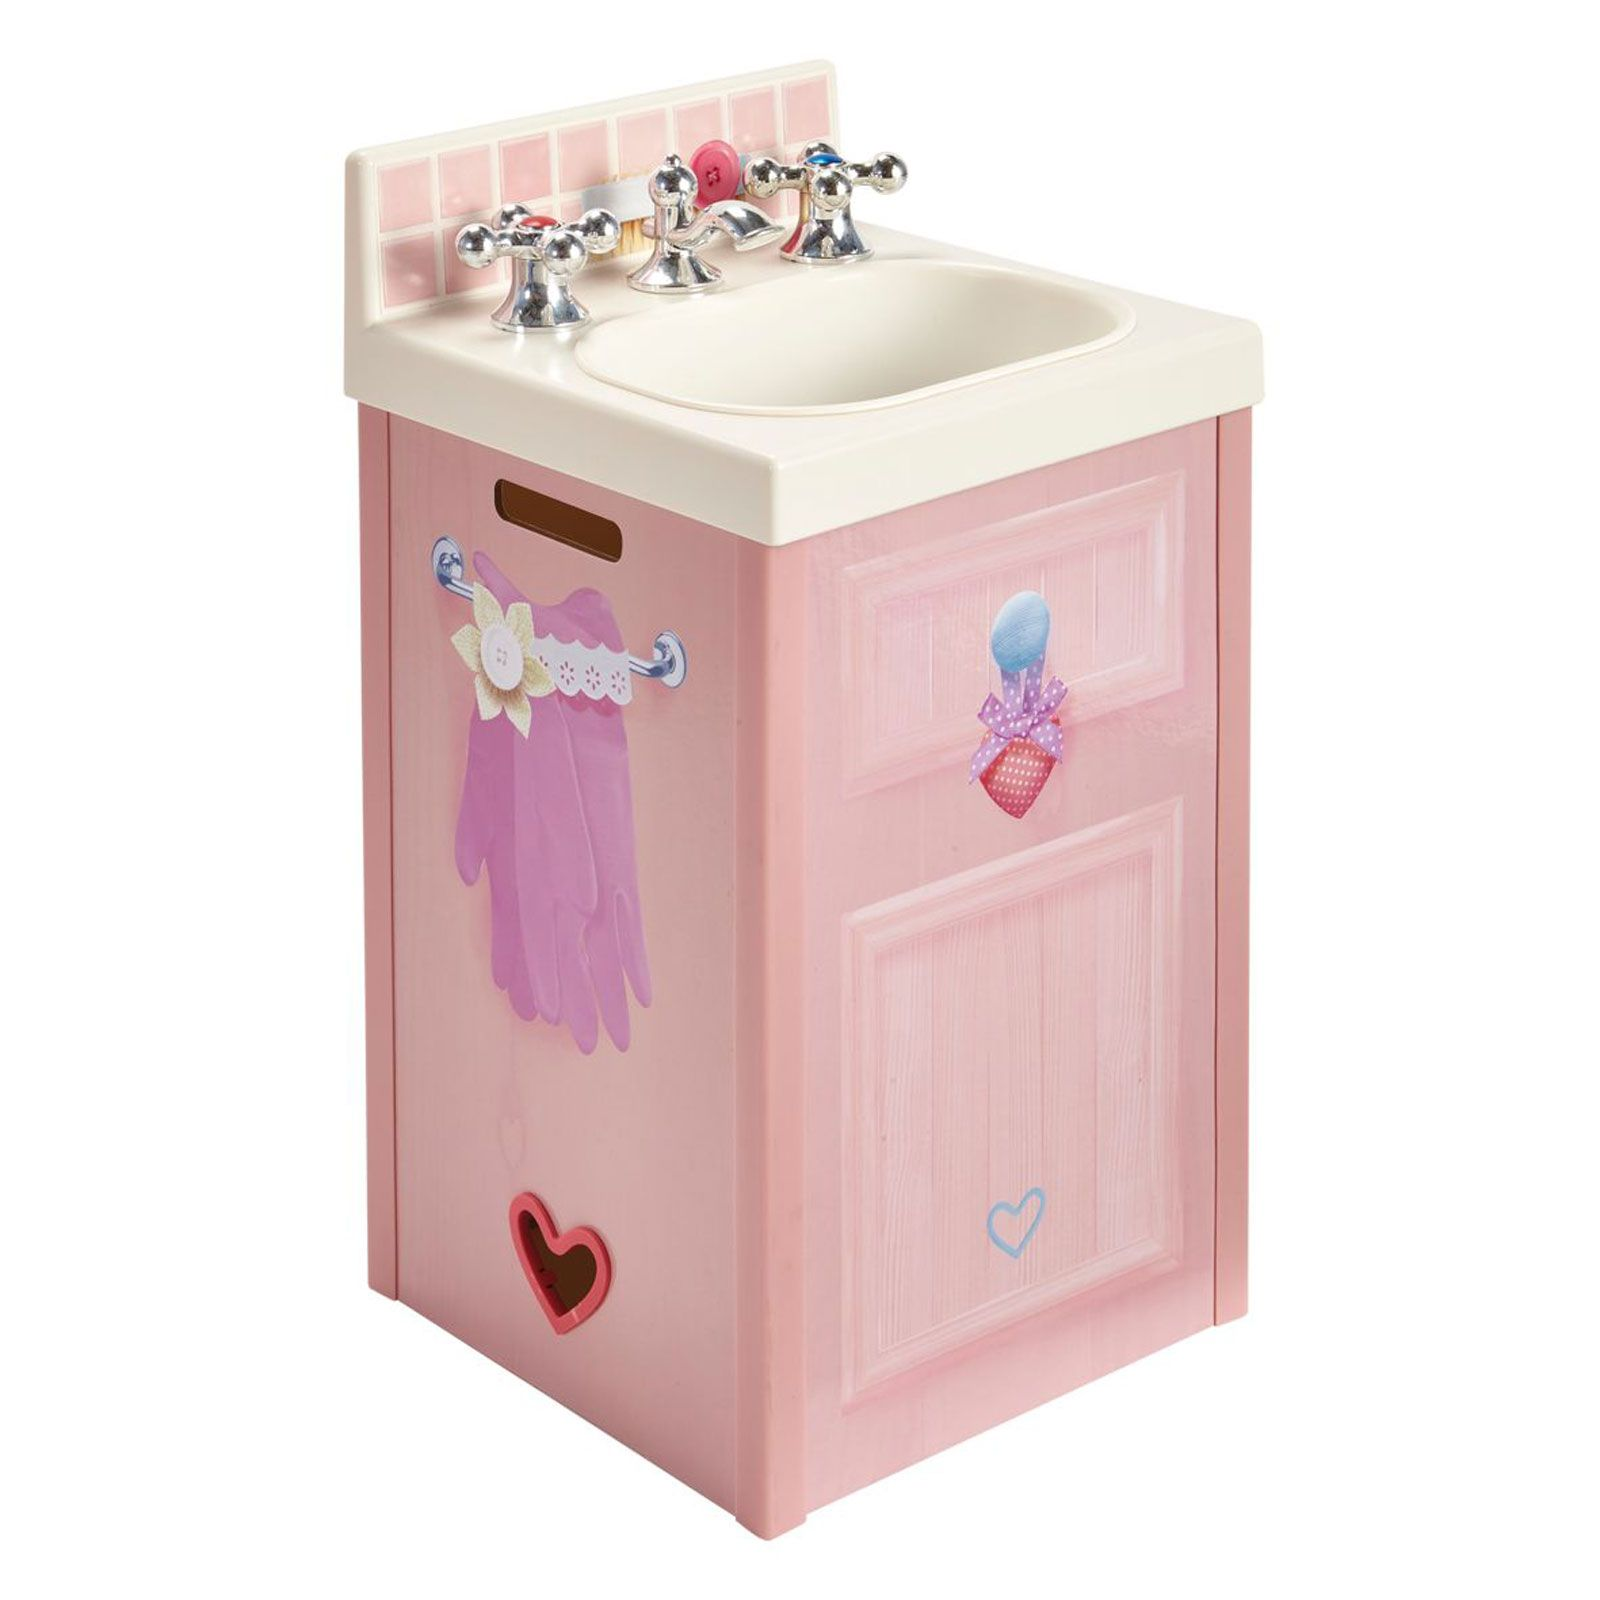 Dream Kitchen Sink: DREAM TOWN ROSE PETAL KITCHEN NEW SINK WASHING MACHINE